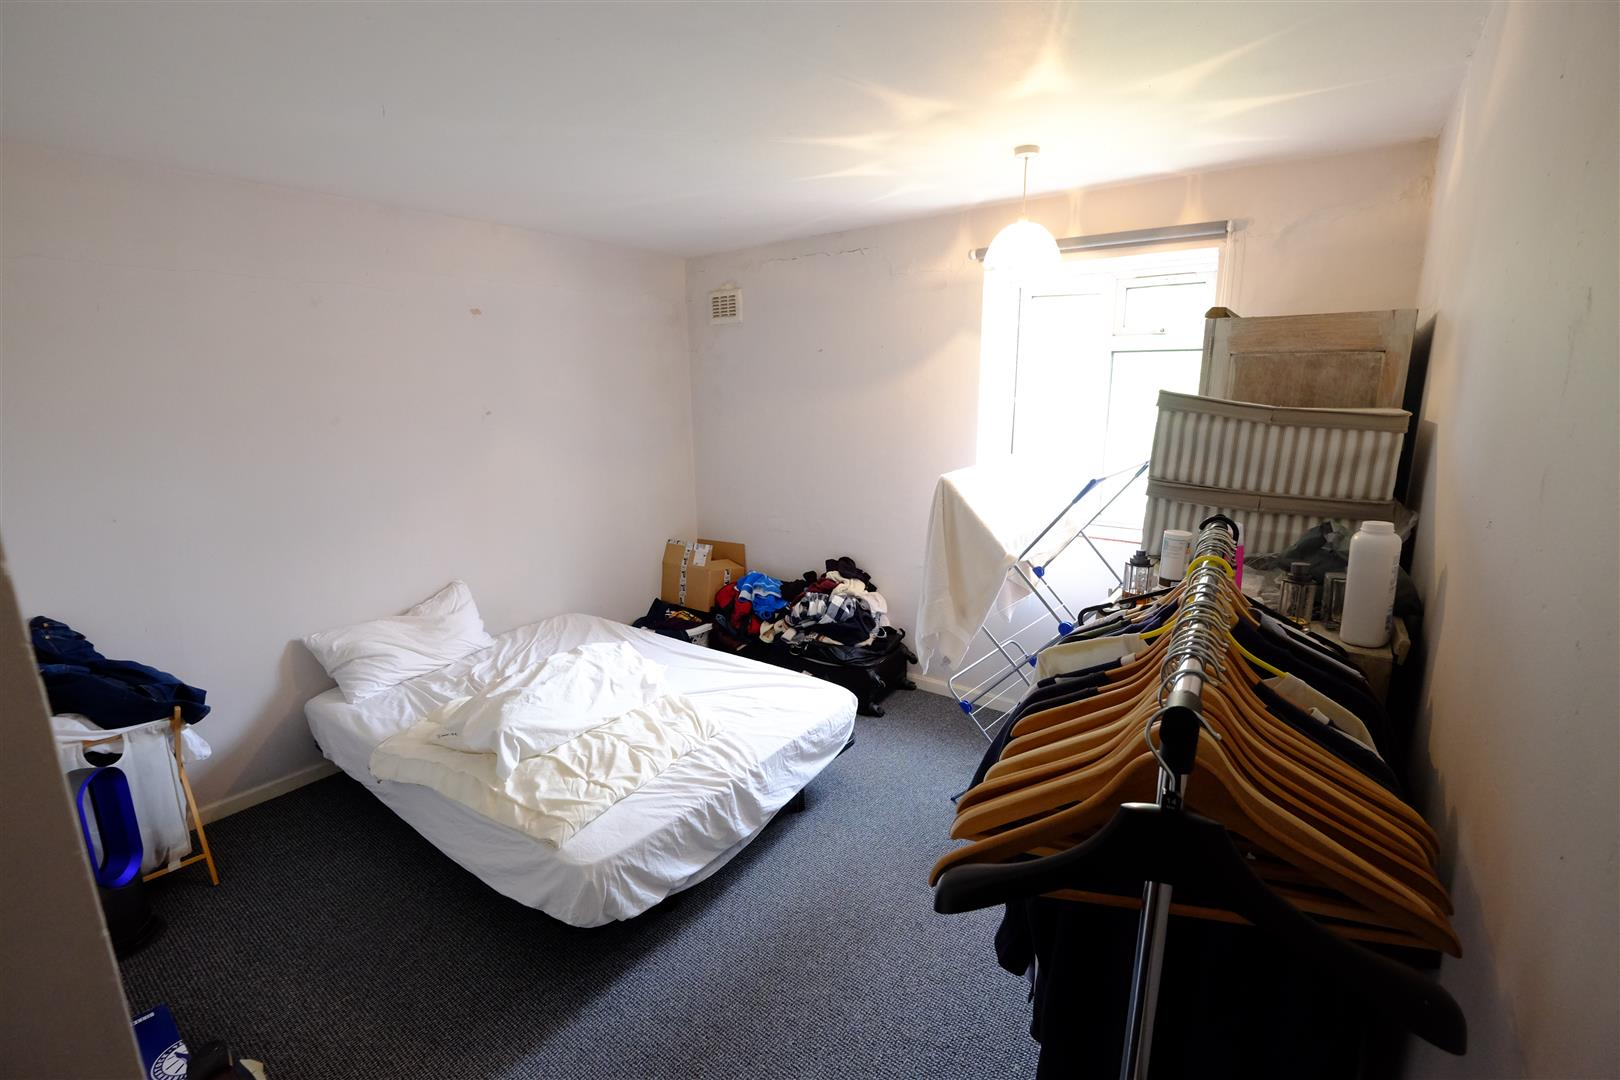 Images for CITY FLAT - EXCELLENT INVESTMENT EAID:hollismoapi BID:11